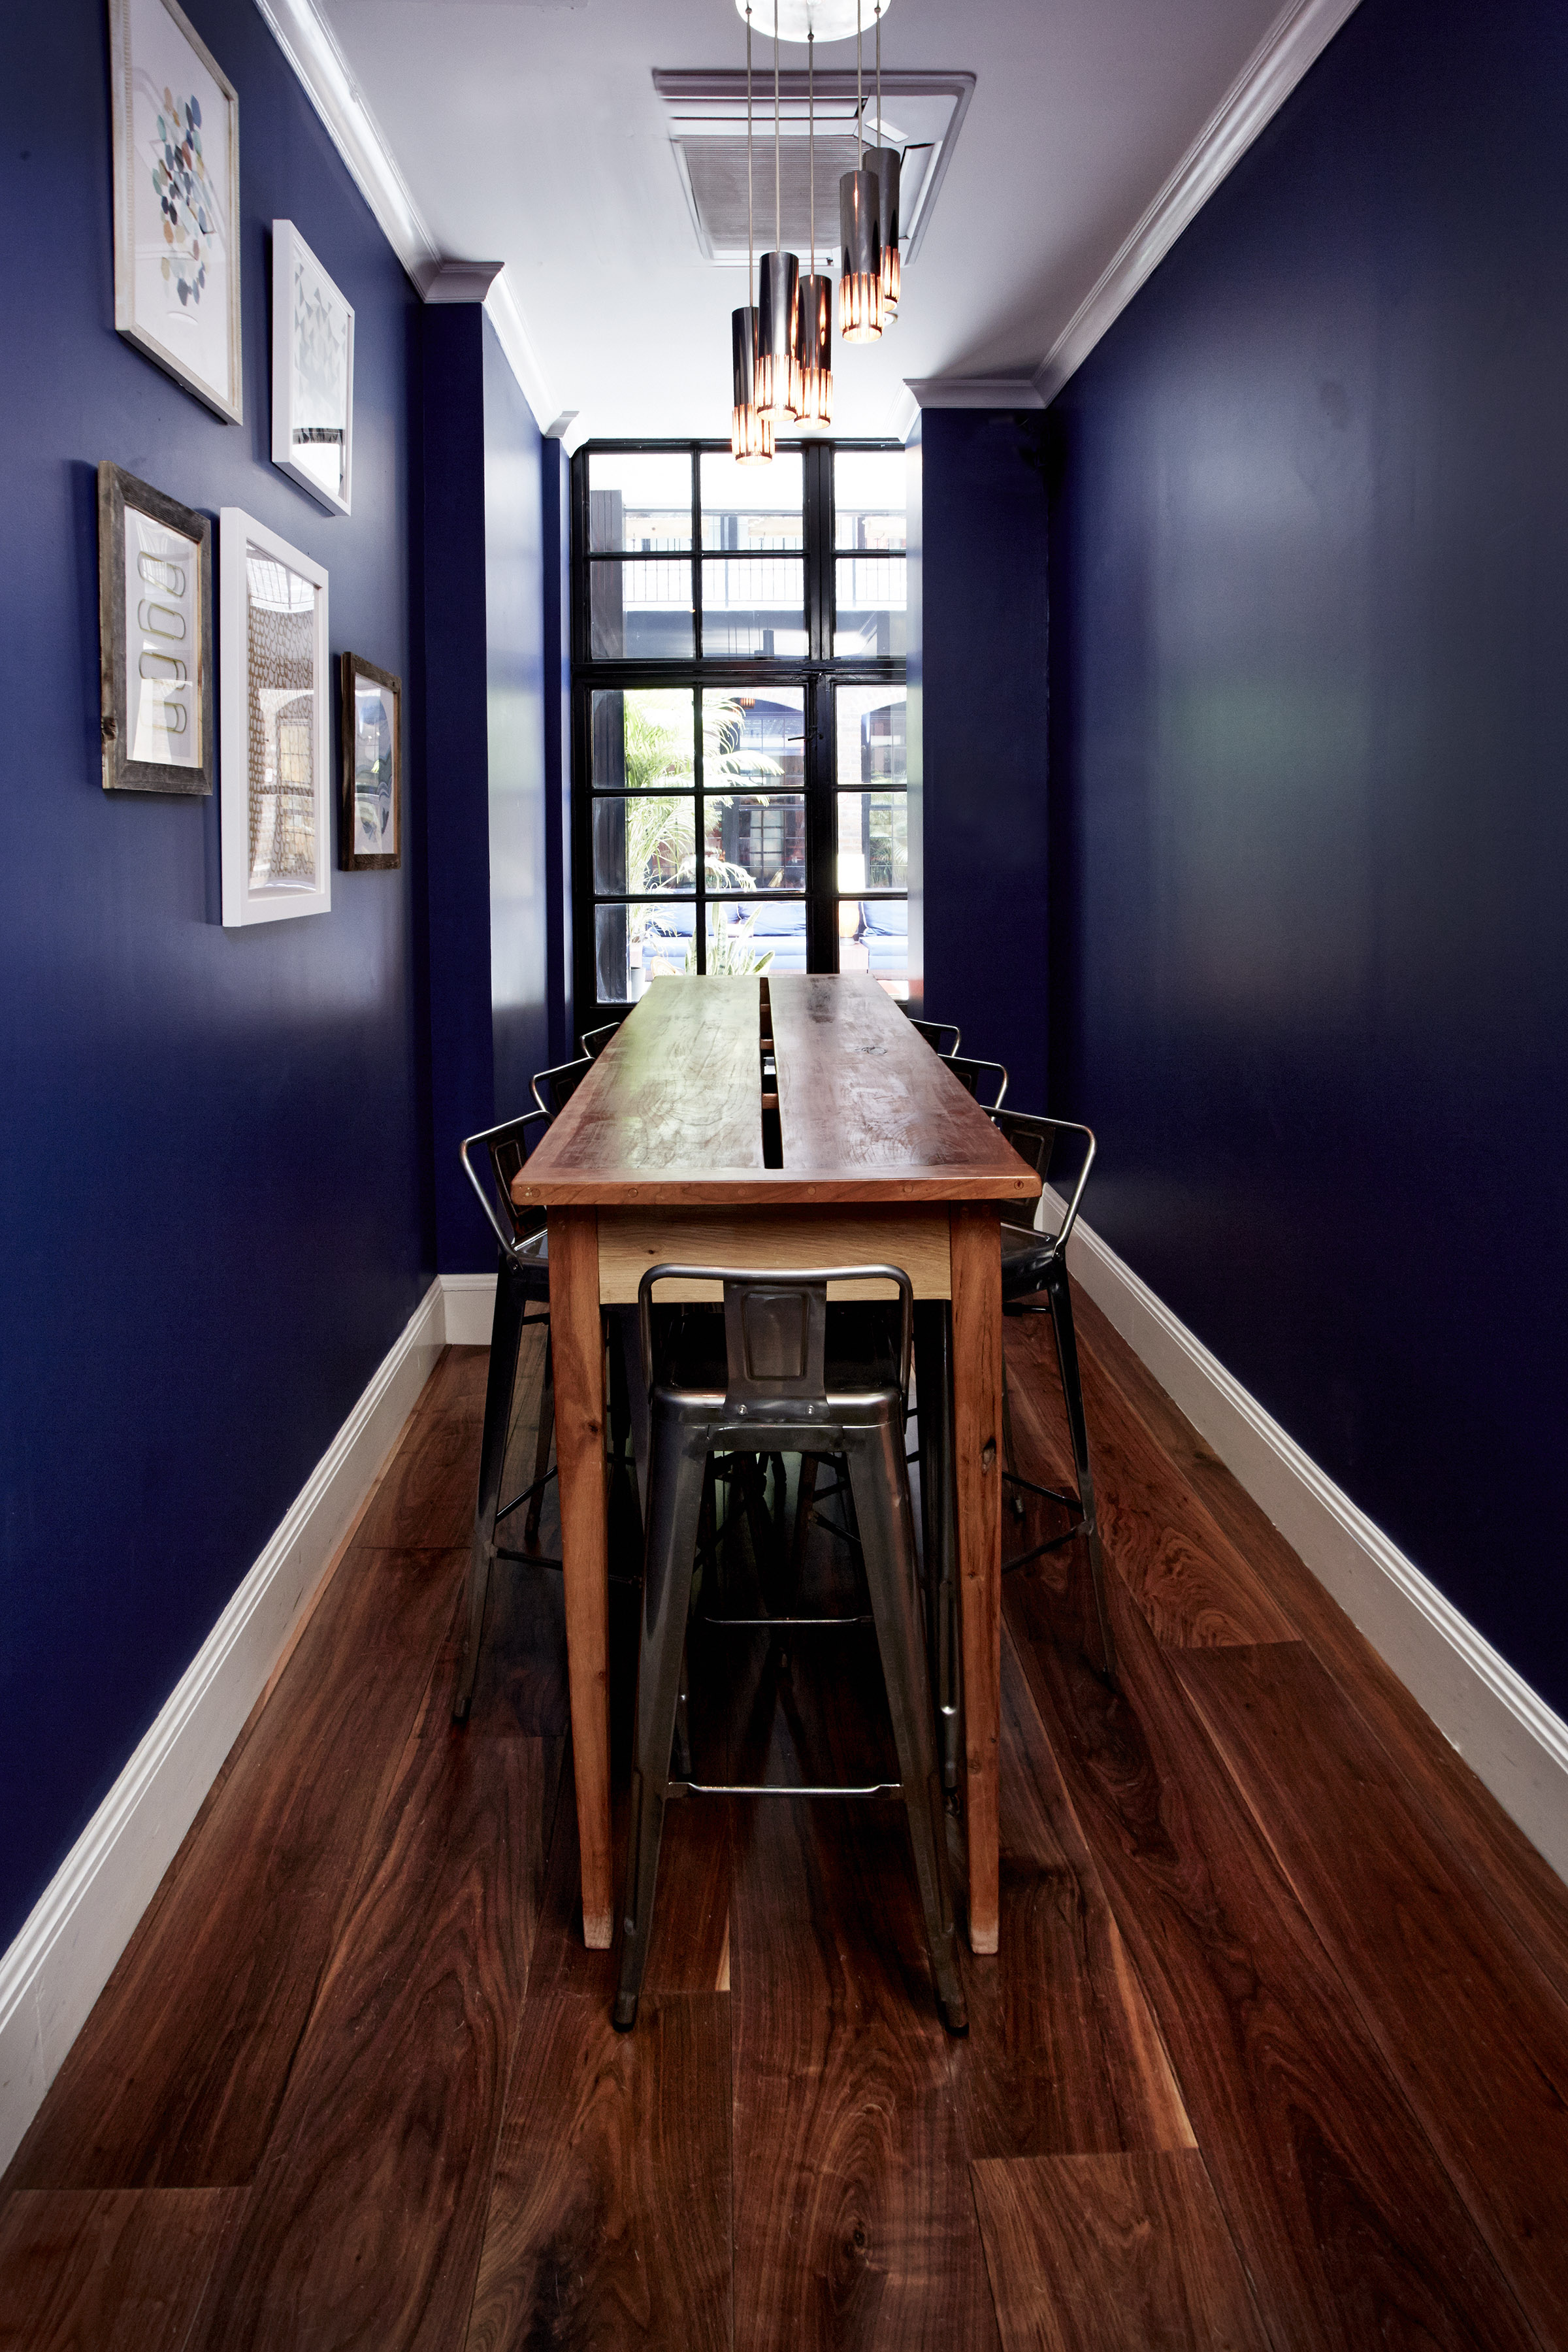 broome street table and chairs.jpg